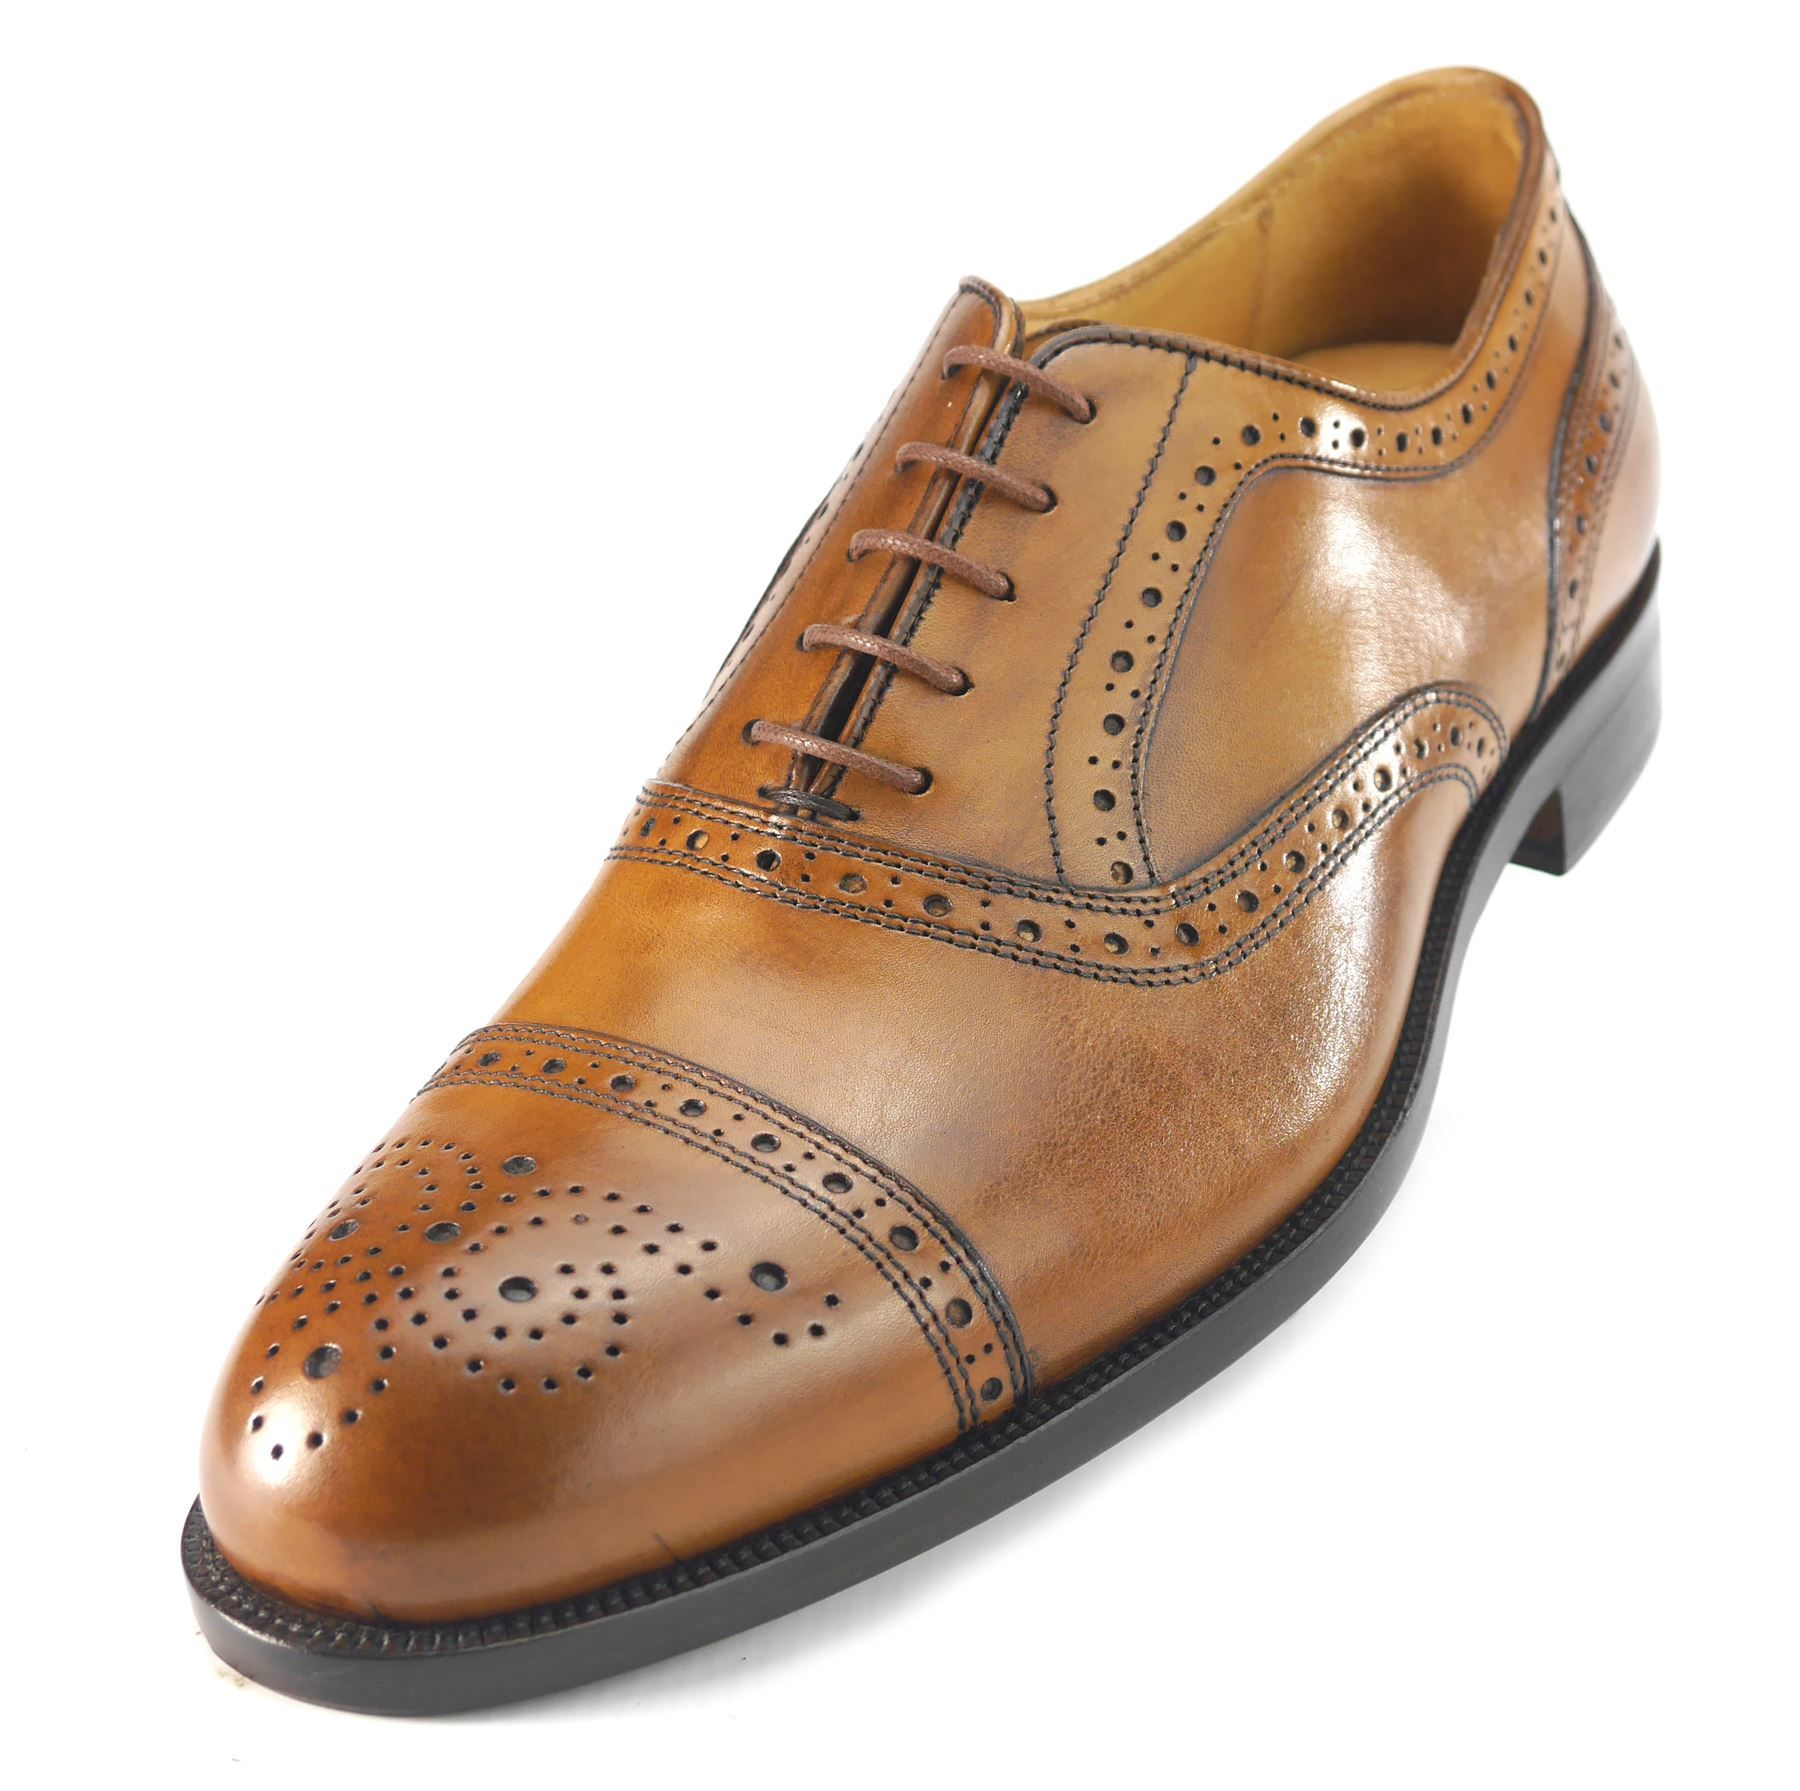 c8bda58c3c5 Mercanti Fiorentini Mens Lace Up All Leather Brogue Oxford Tan or Black  Shoes